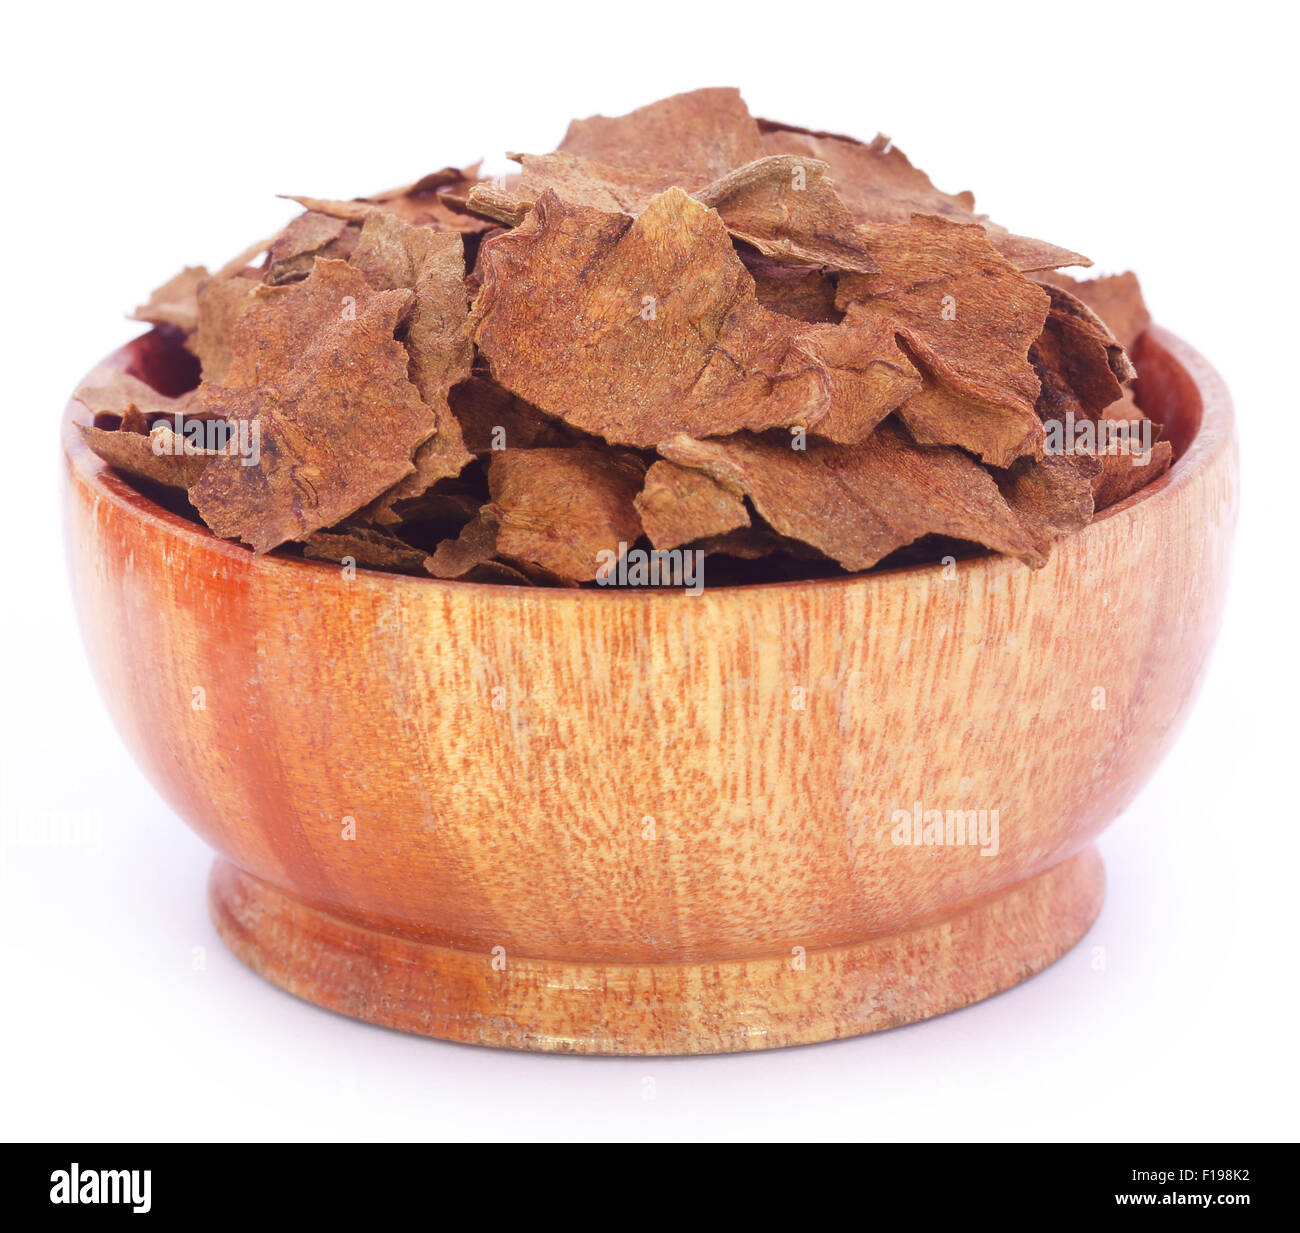 Dry tobacco leaves in a wooden bowl - Stock Image